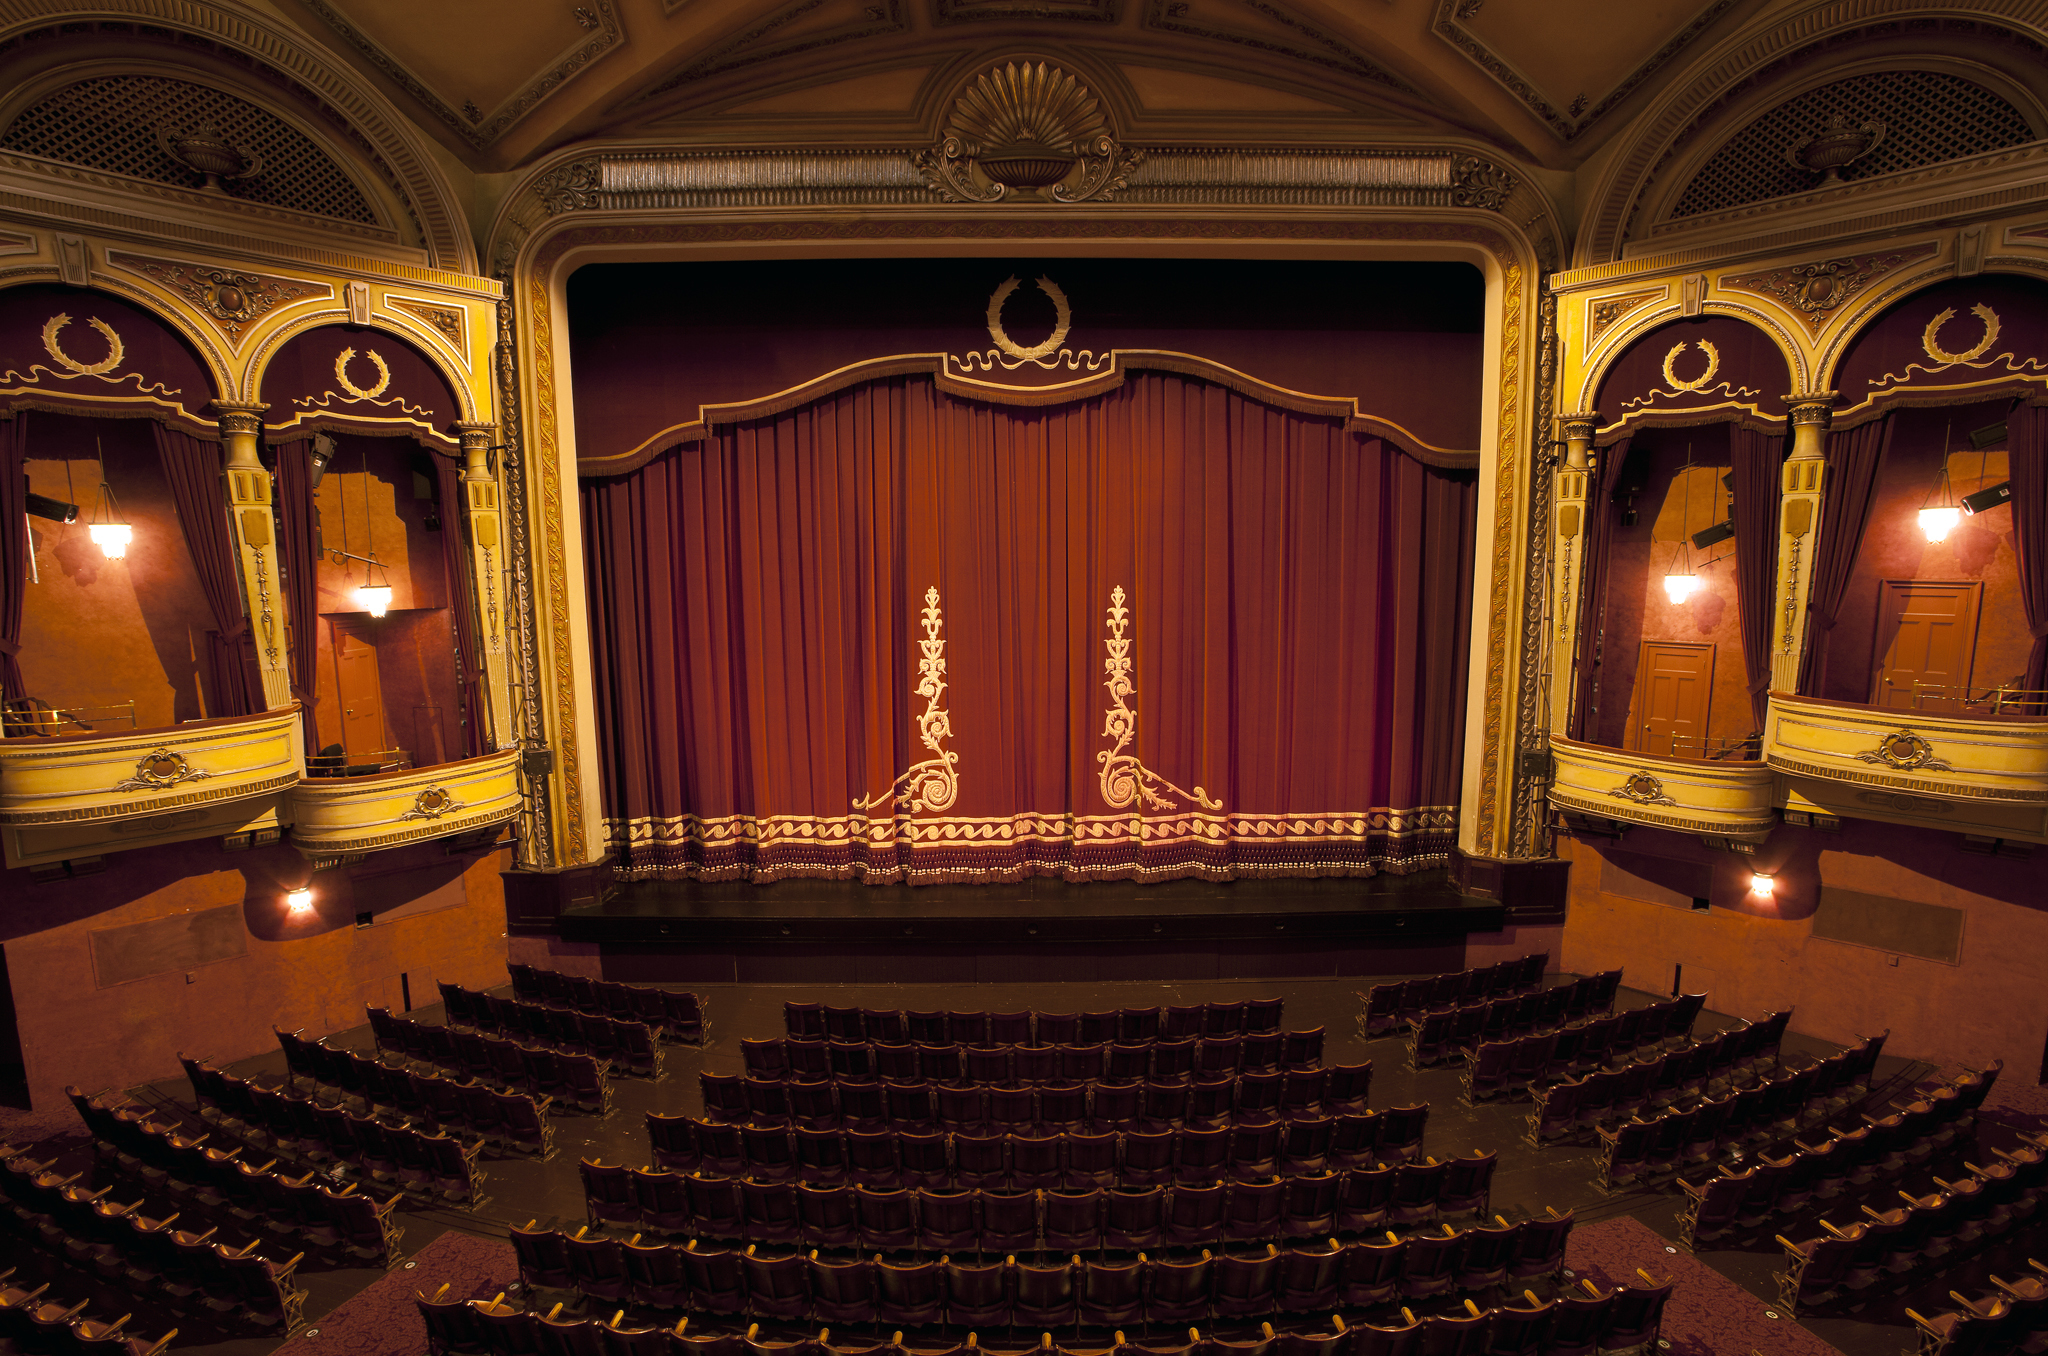 Theatre shows in Edinburgh